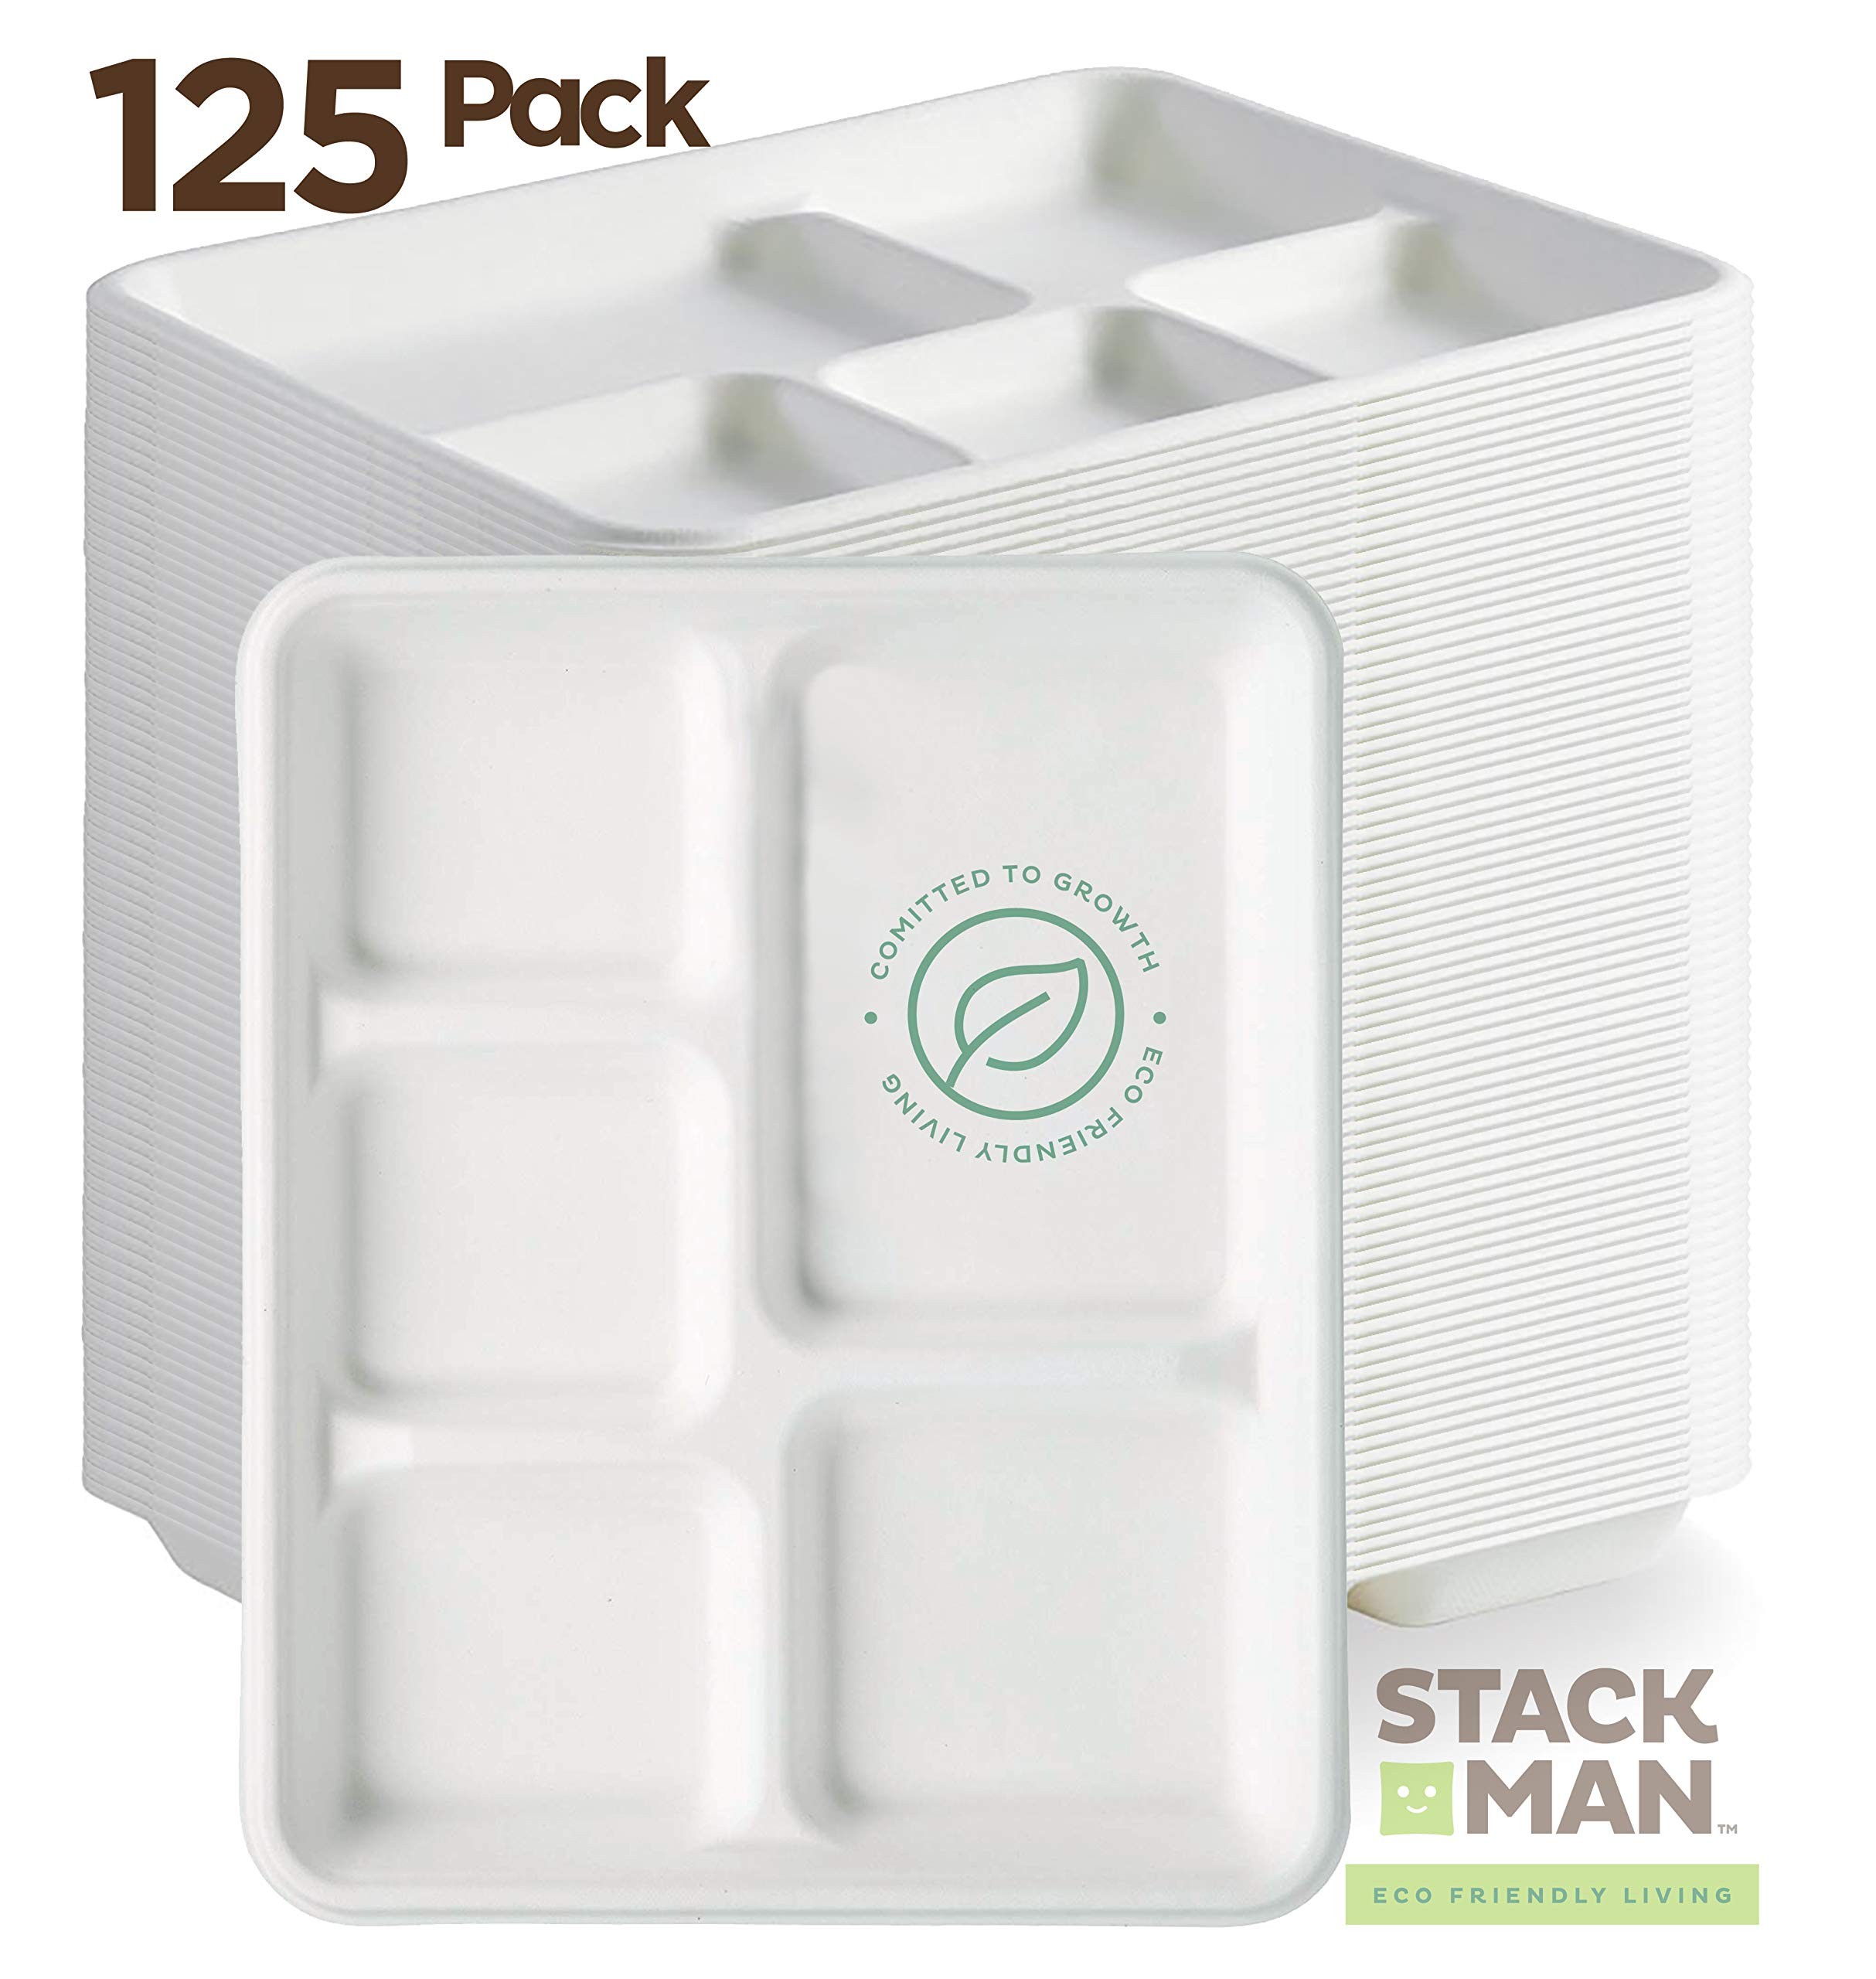 Stack Man 100% Compostable Paper Plate 125-Pack 5-Compartment Bagasse School Lunch Heavy Duty Quality Disposable Tray, Eco-Friendly Made of Sugar Cane Fibers by Stack Man